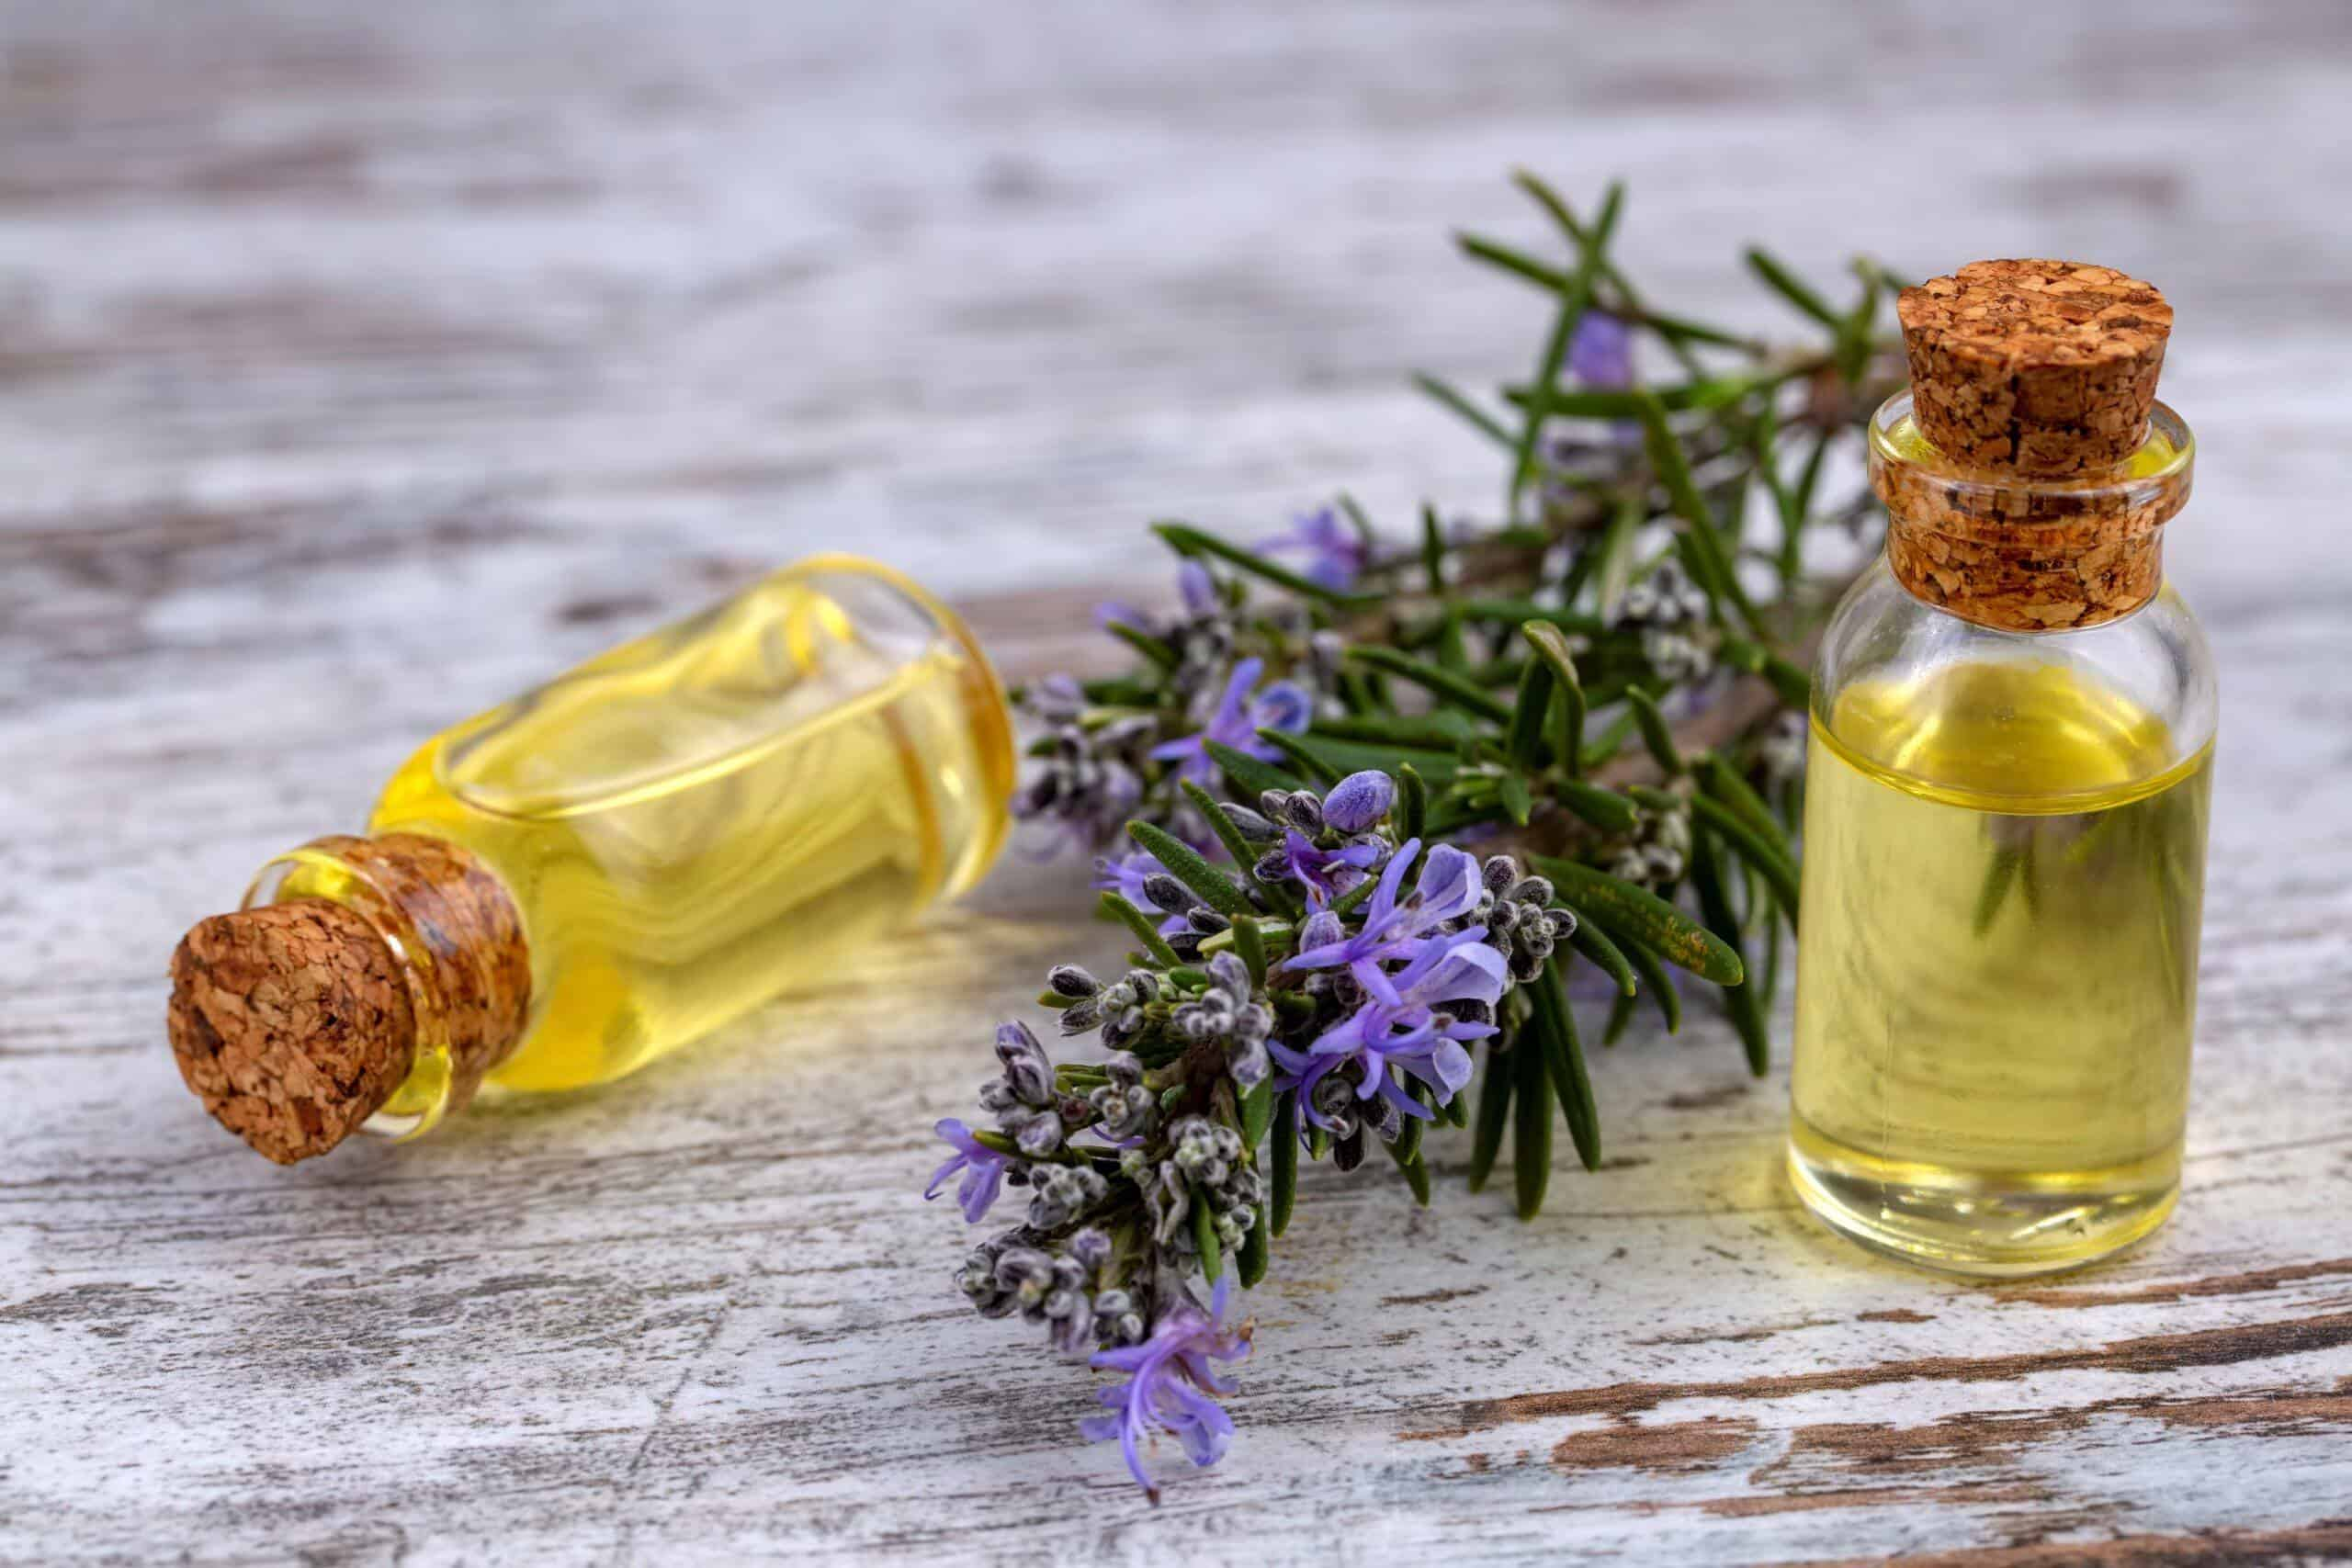 Why Use Rosemary Oil For Hair Growth Helps With Androgenic Alopecia Hair Buddha